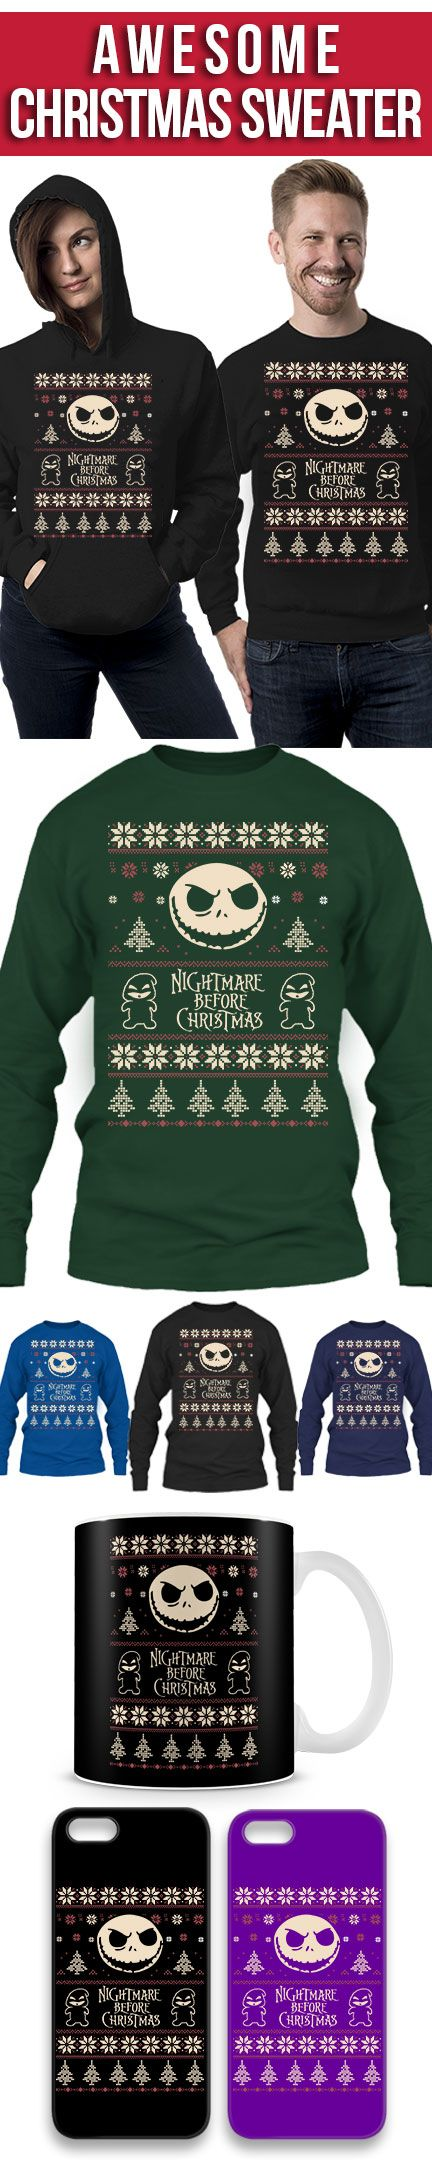 Nightmare Before Christmas Ugly Christmas Sweater! Click The Image To Buy It Now or Tag Someone You Want To Buy This For. #nightmarebeforechristmas